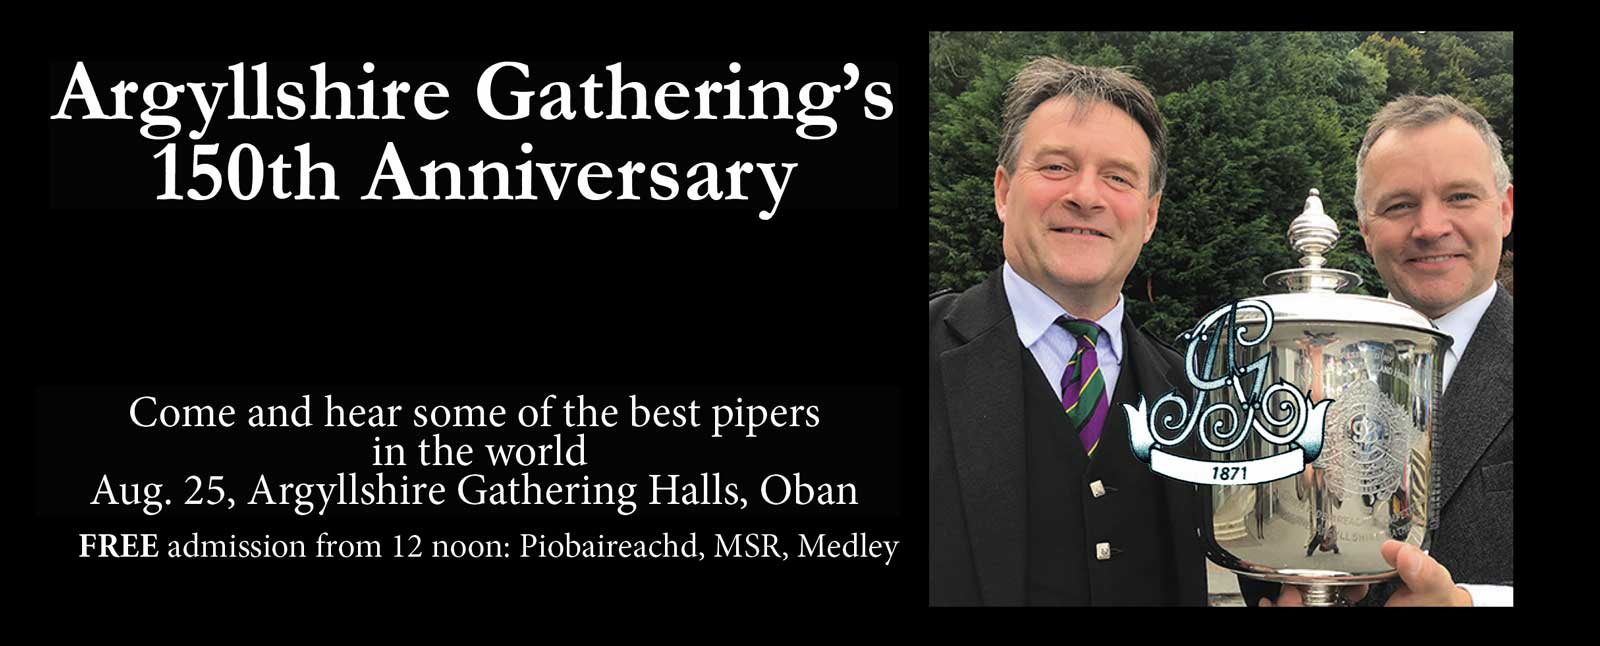 Argyllshire Gathering 150th Anniversary Piping Competition - image courtesy Piping Press